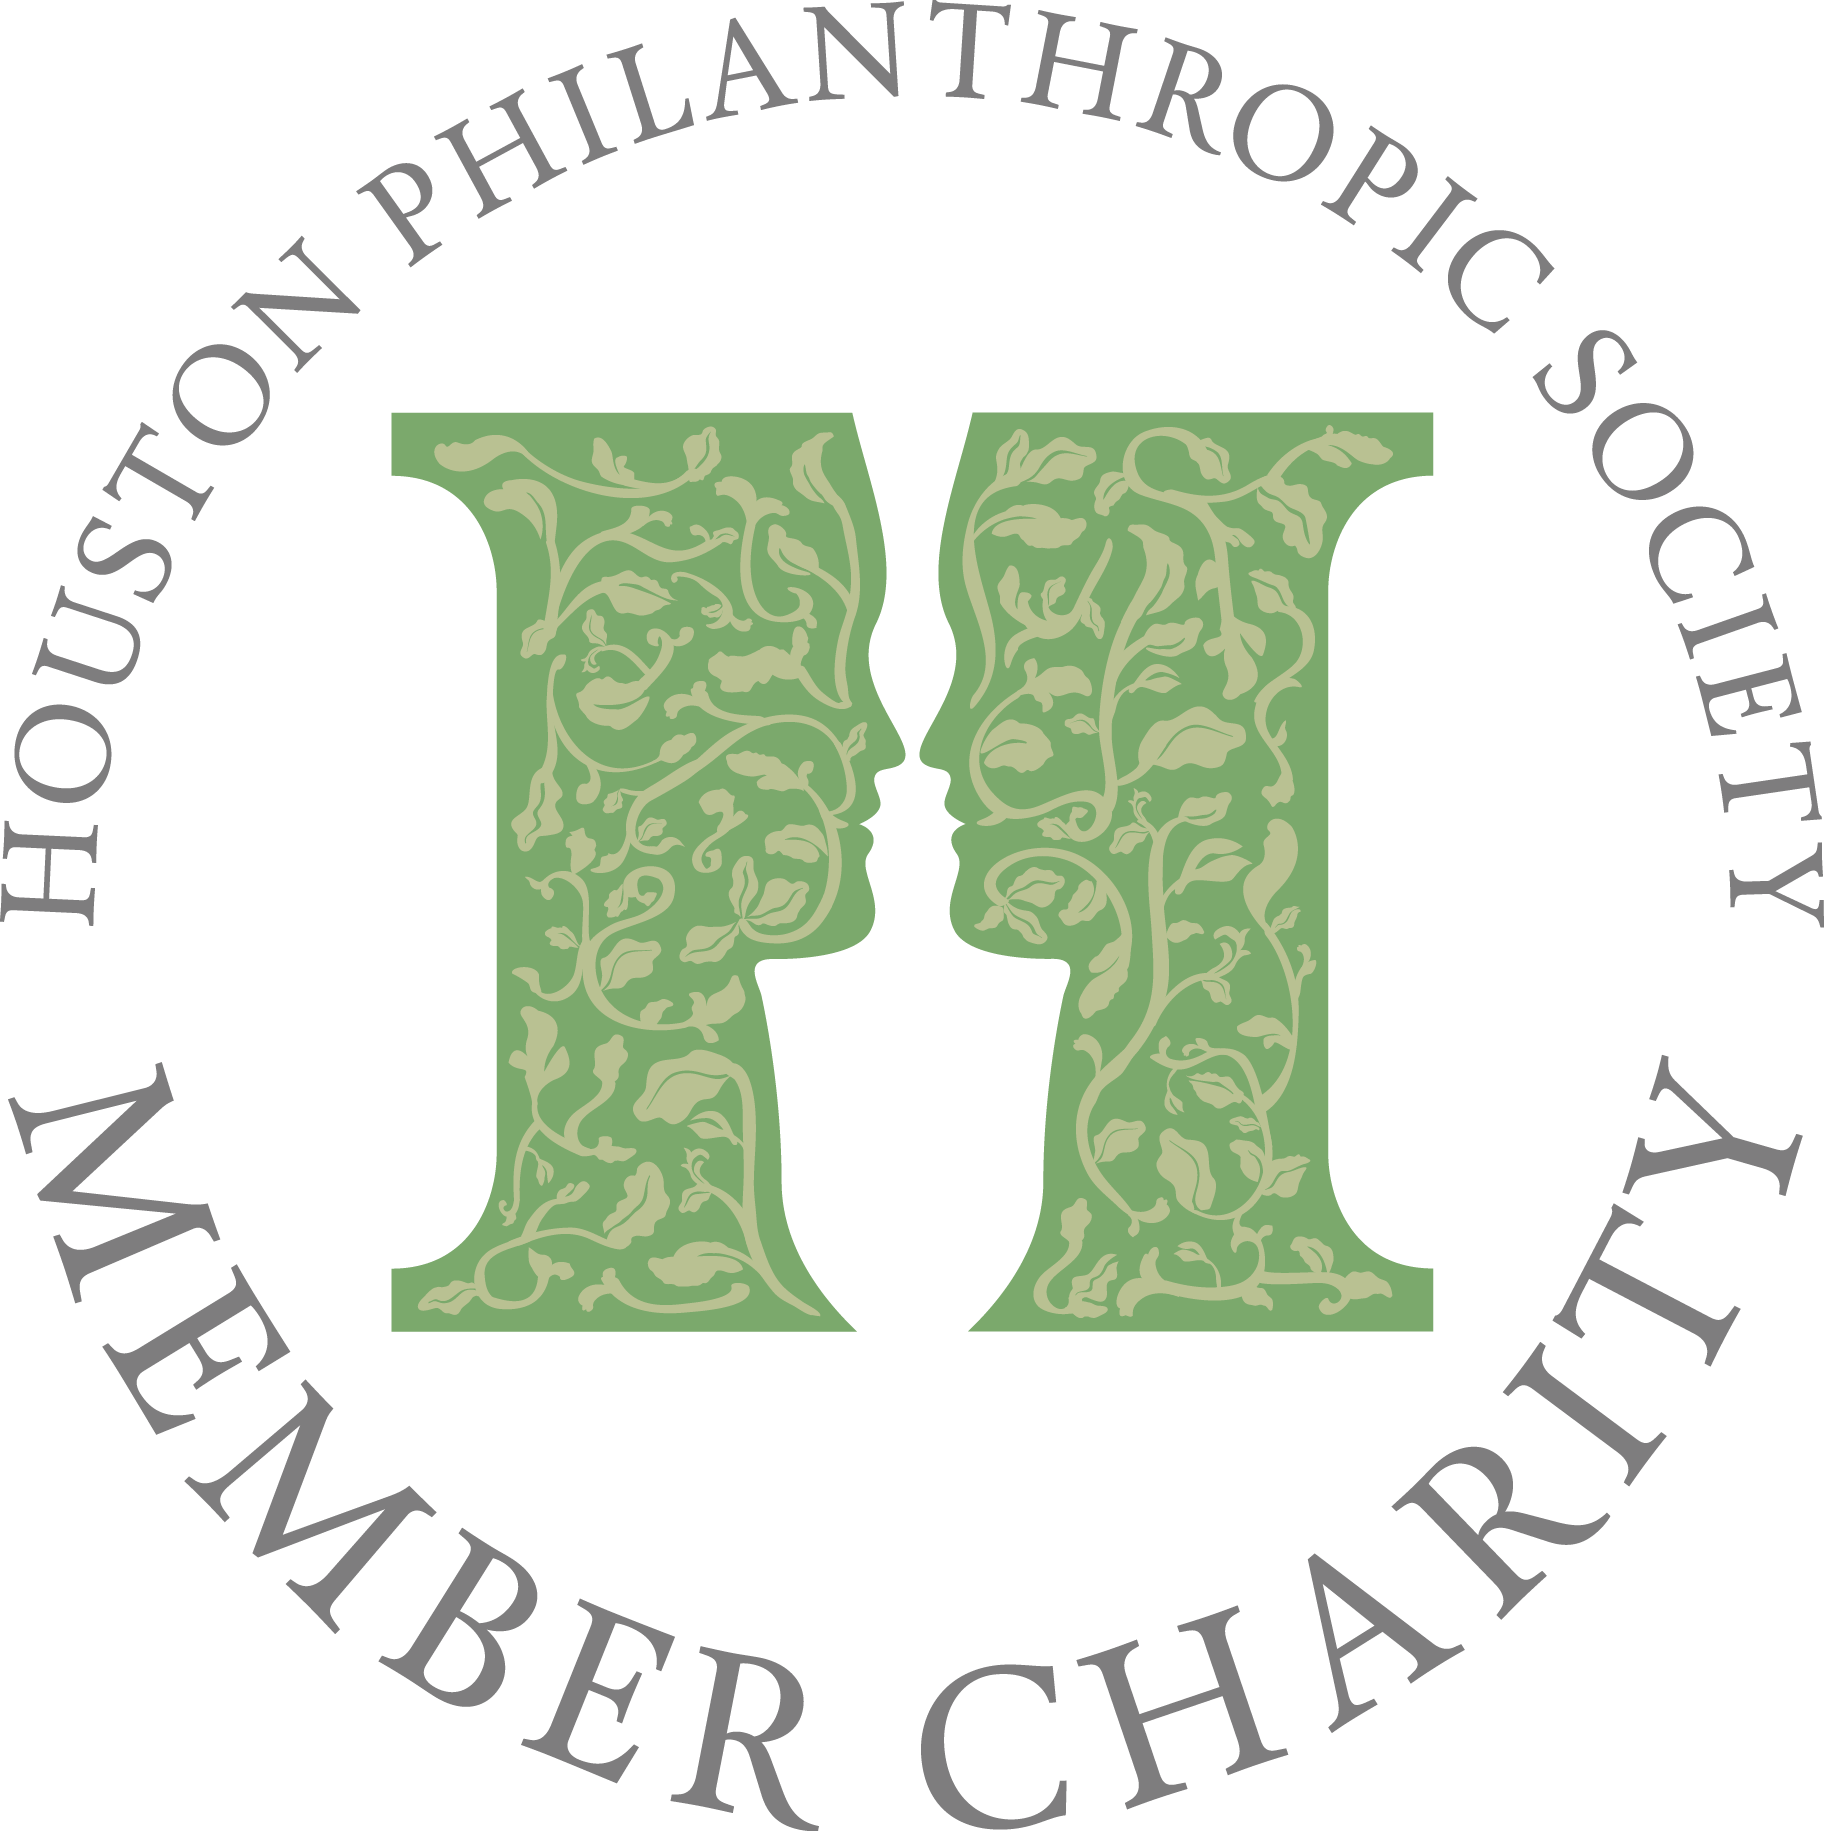 Volunteering clipart philanthropy. Houston philanthropic society for